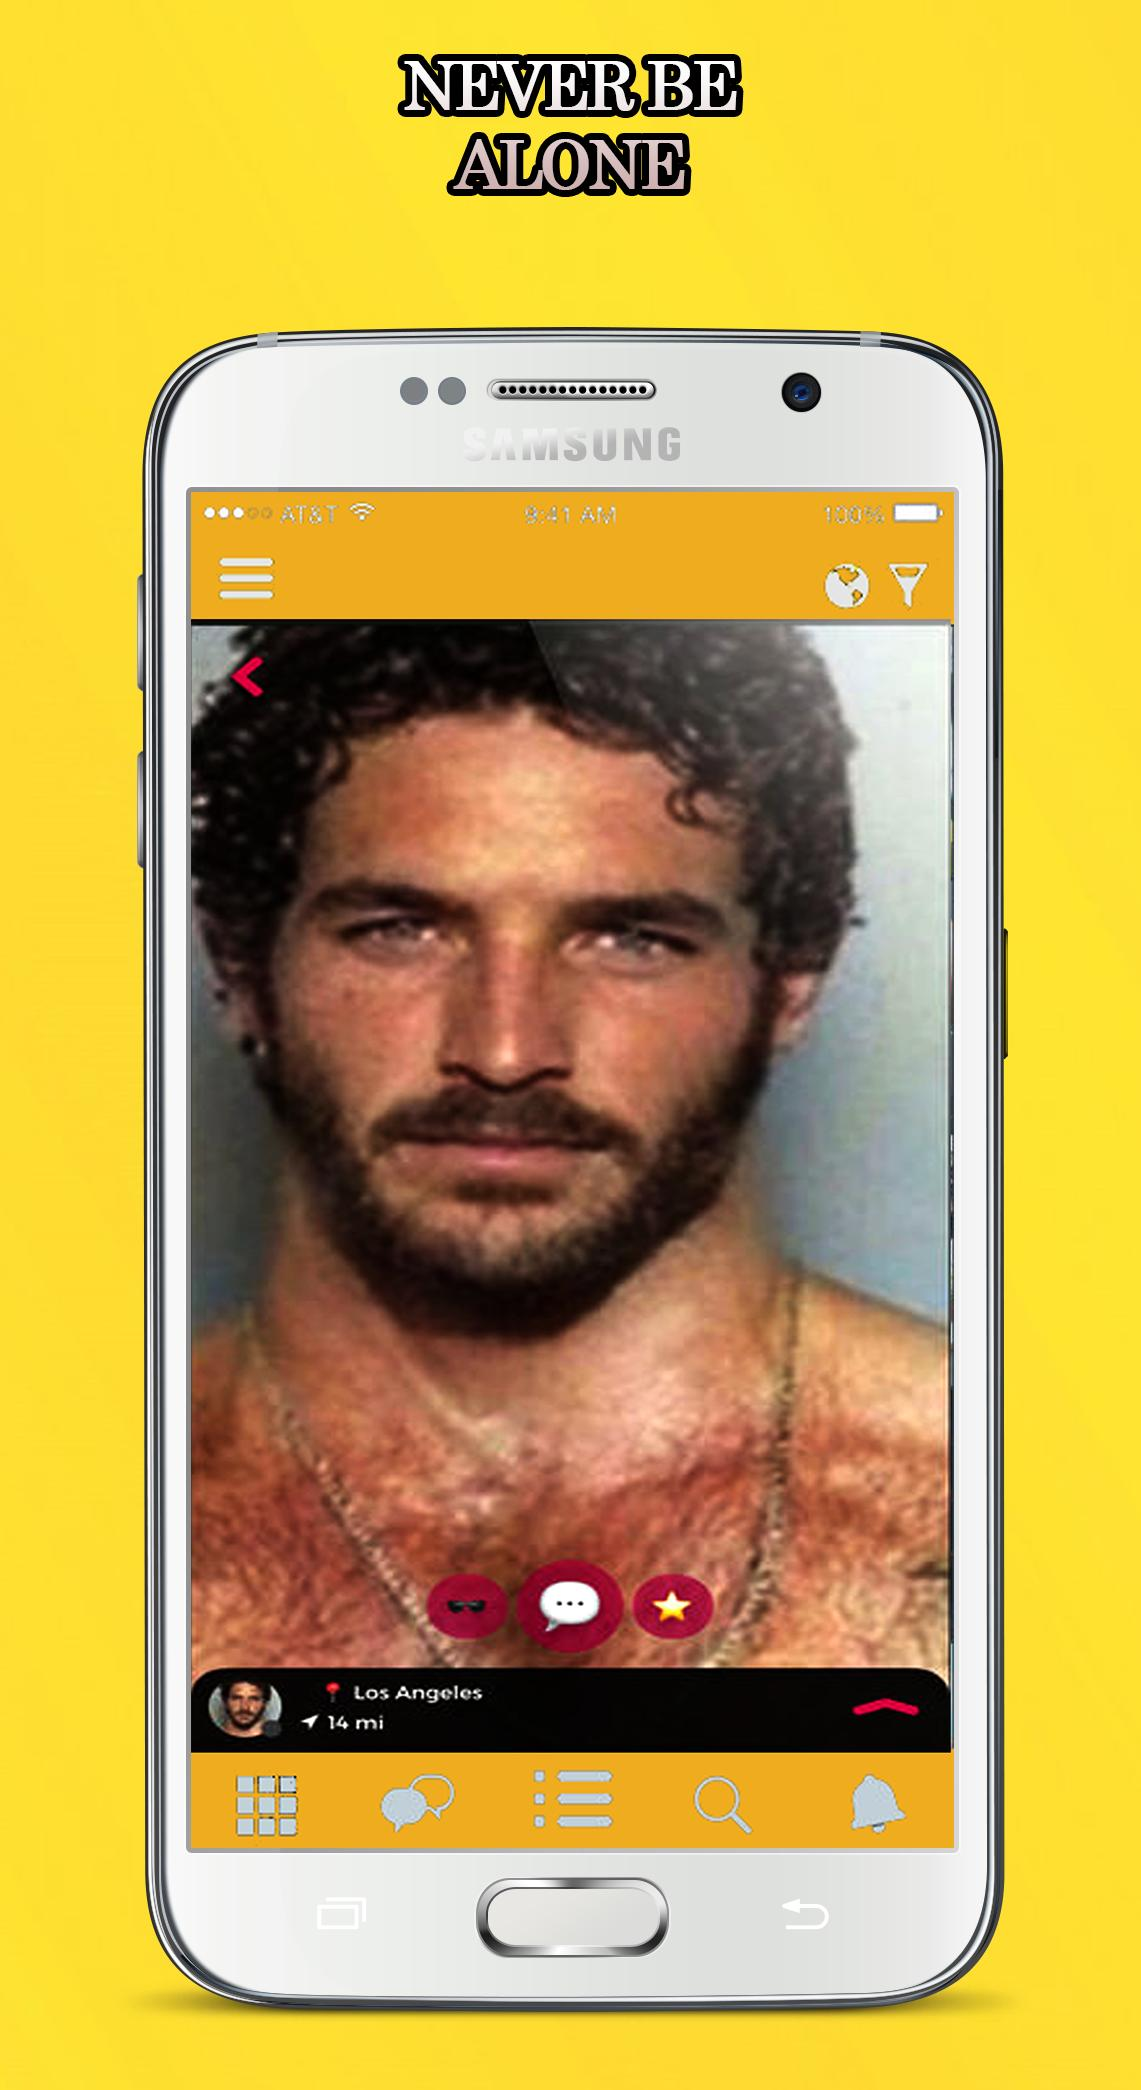 Daddy & Gay Men apk for Android